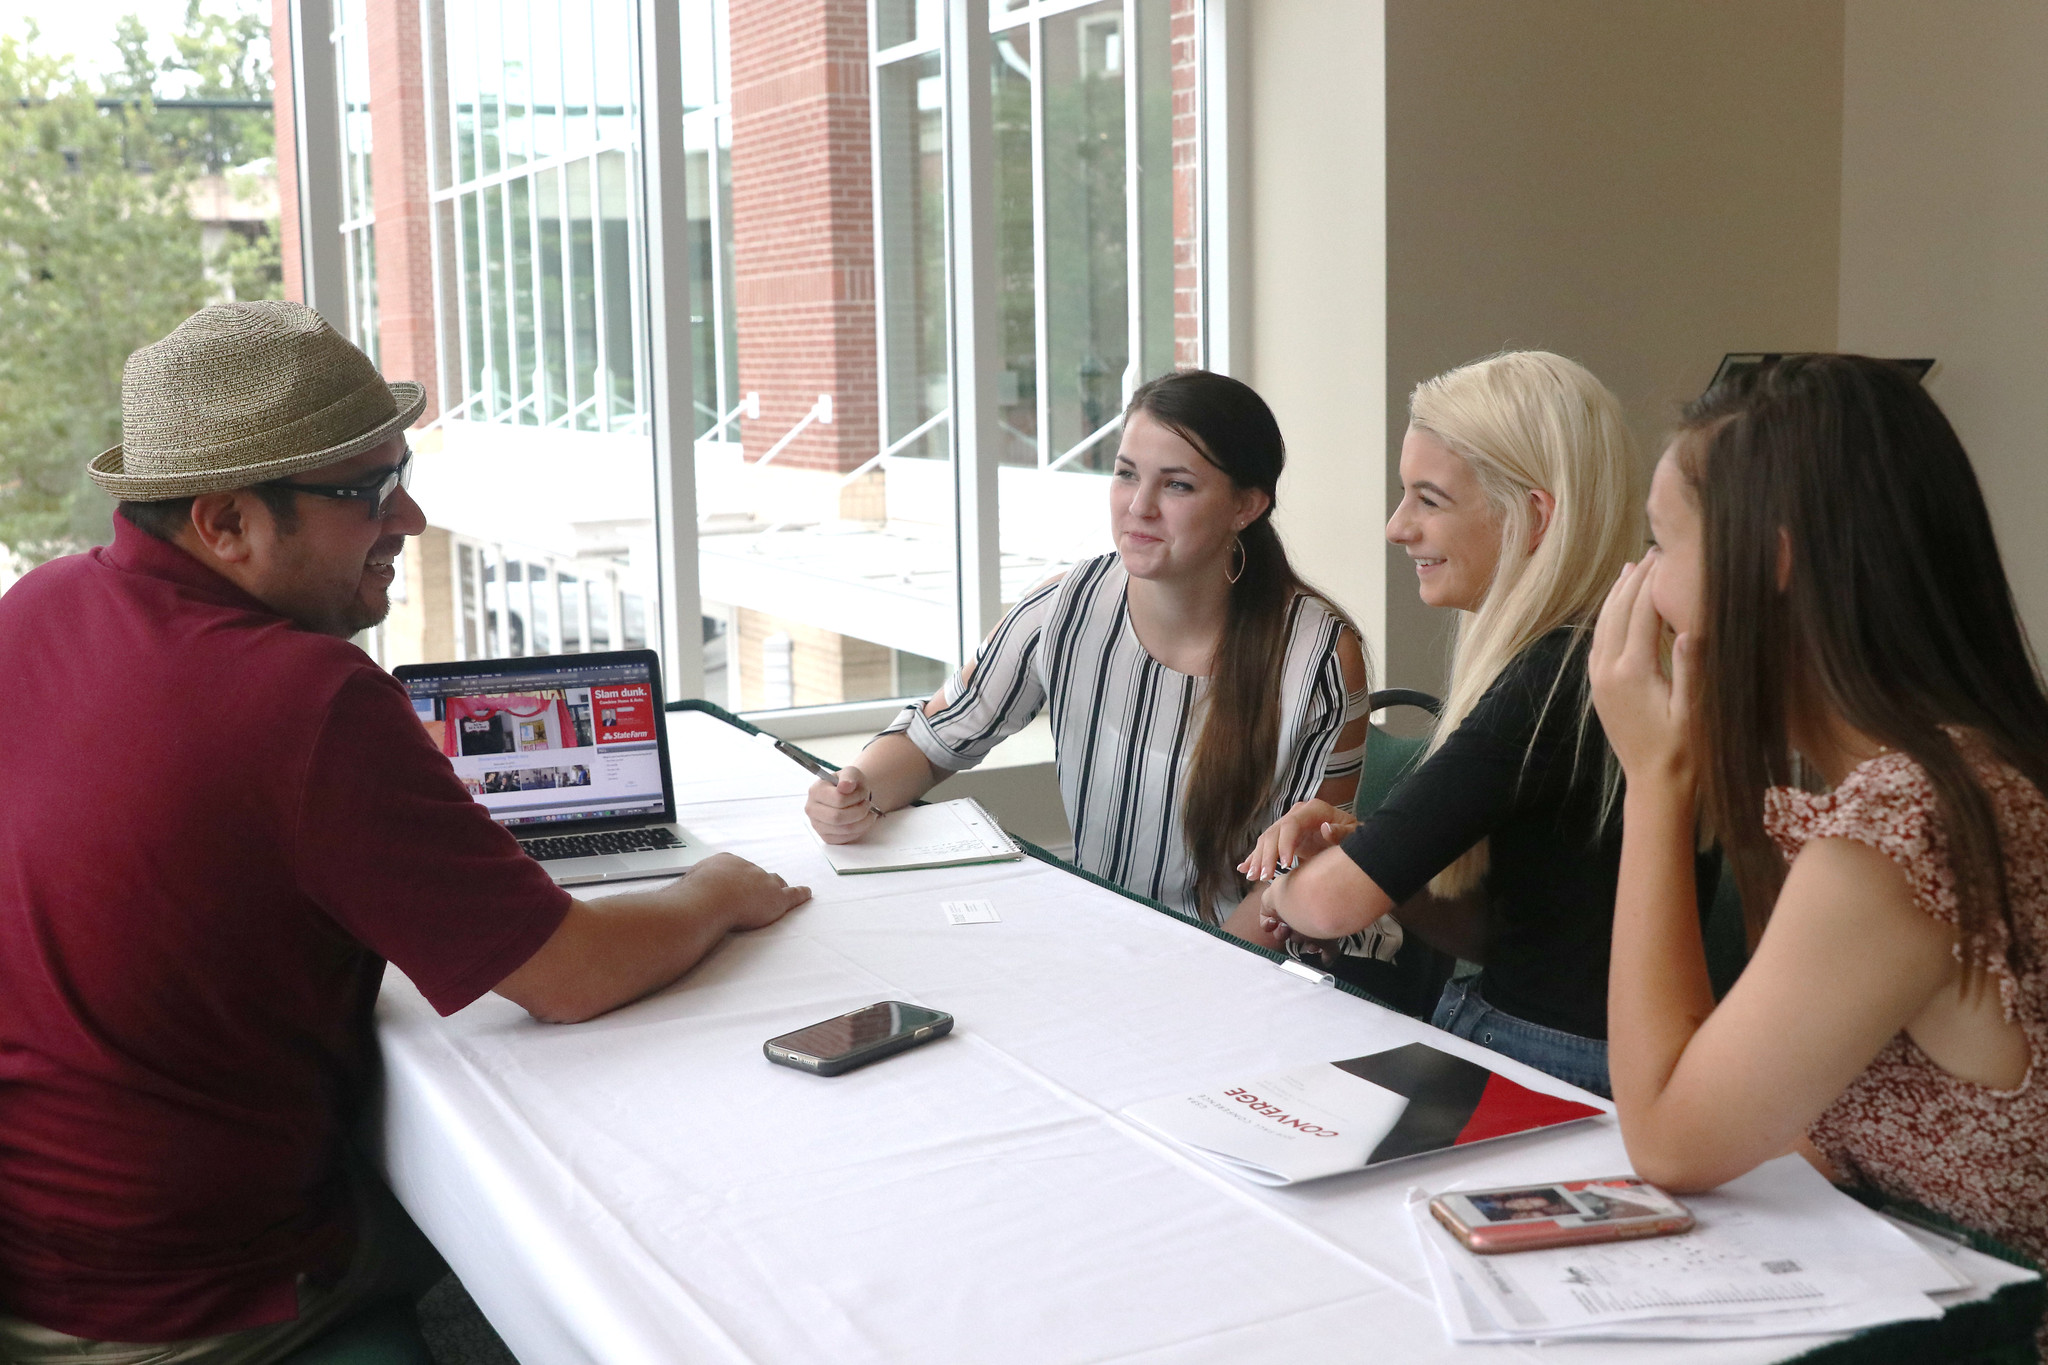 Students speak with Dr. Joe Dennis of Piedmont College during on-site critiques at the Georgia Scholastic Press Association (GSPA) Fall Conference on Thursday, Sept. 19, 2019. High school publication leaders had the opportunity to receive feedback from media professionals about their newspapers, news websites and newsmagazines in addition to attending sessions. GSPA hosted 40 sessions during the conference. Photo: Sarah Freeman/UGA Grady College